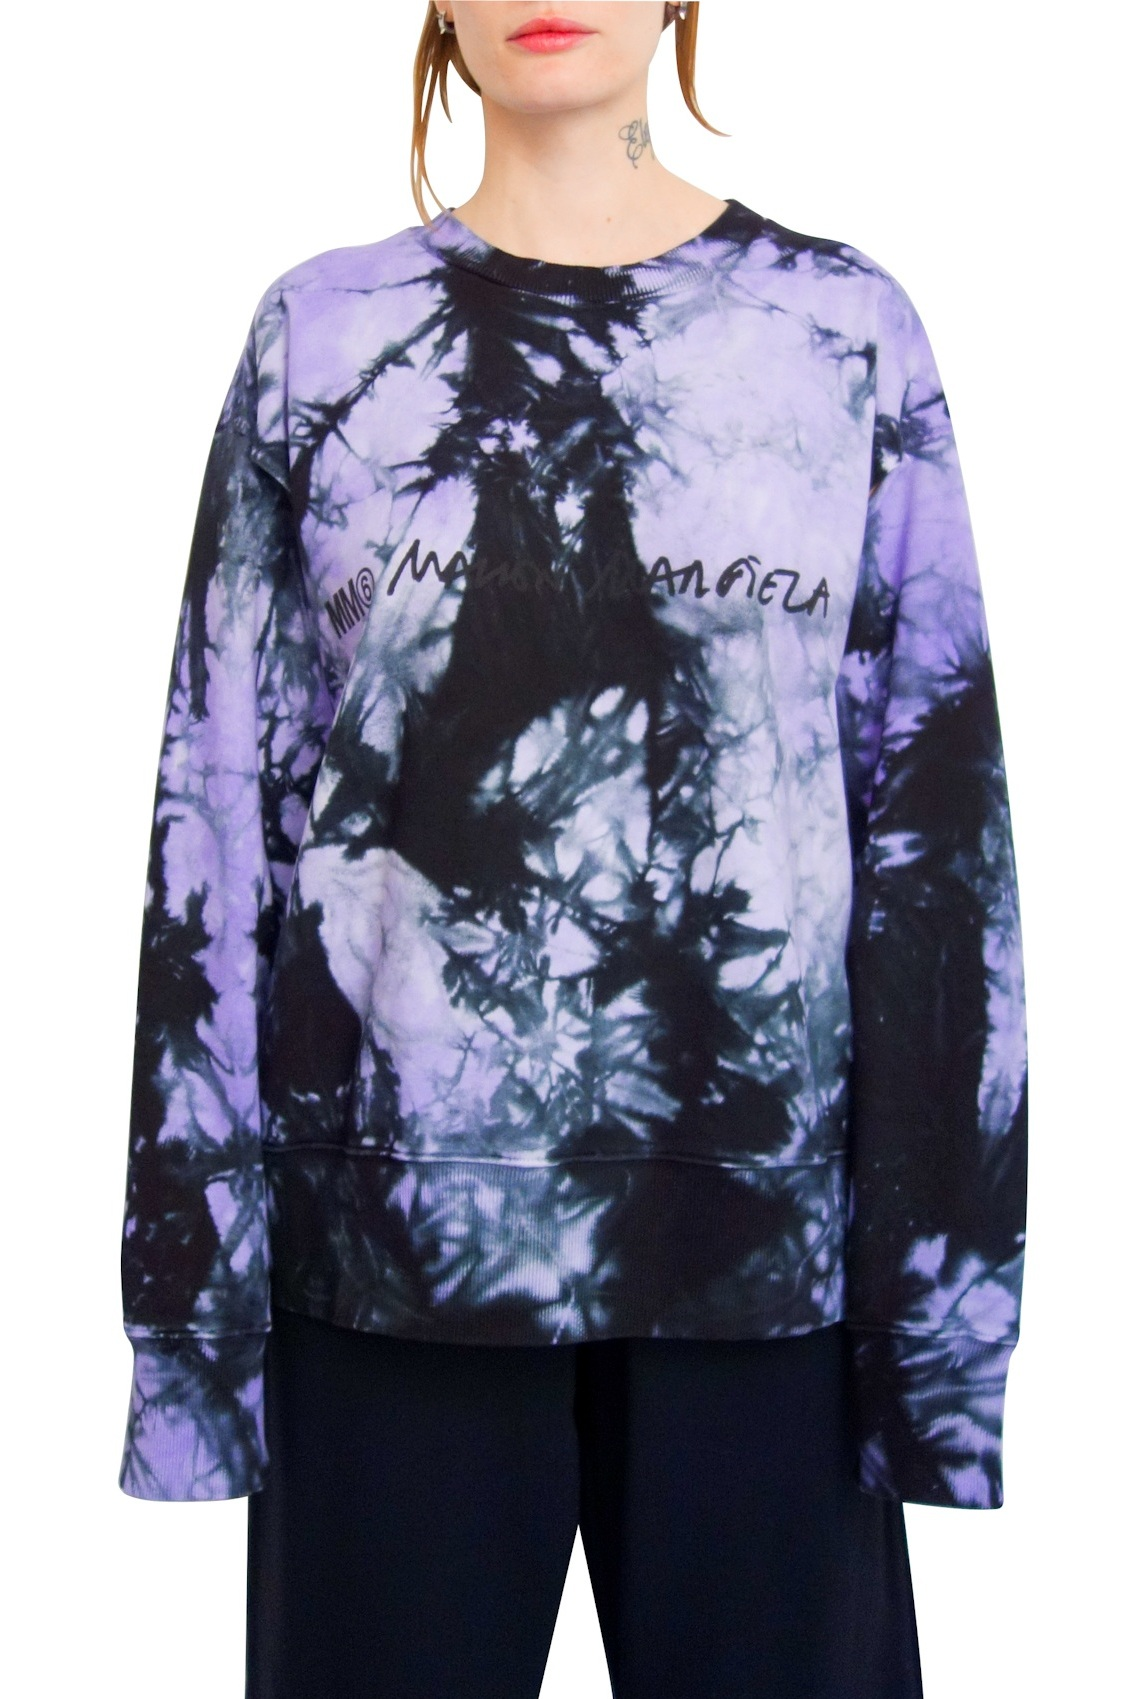 MM6 MAISON MARGIELA Tie Dye Sweater $565 -